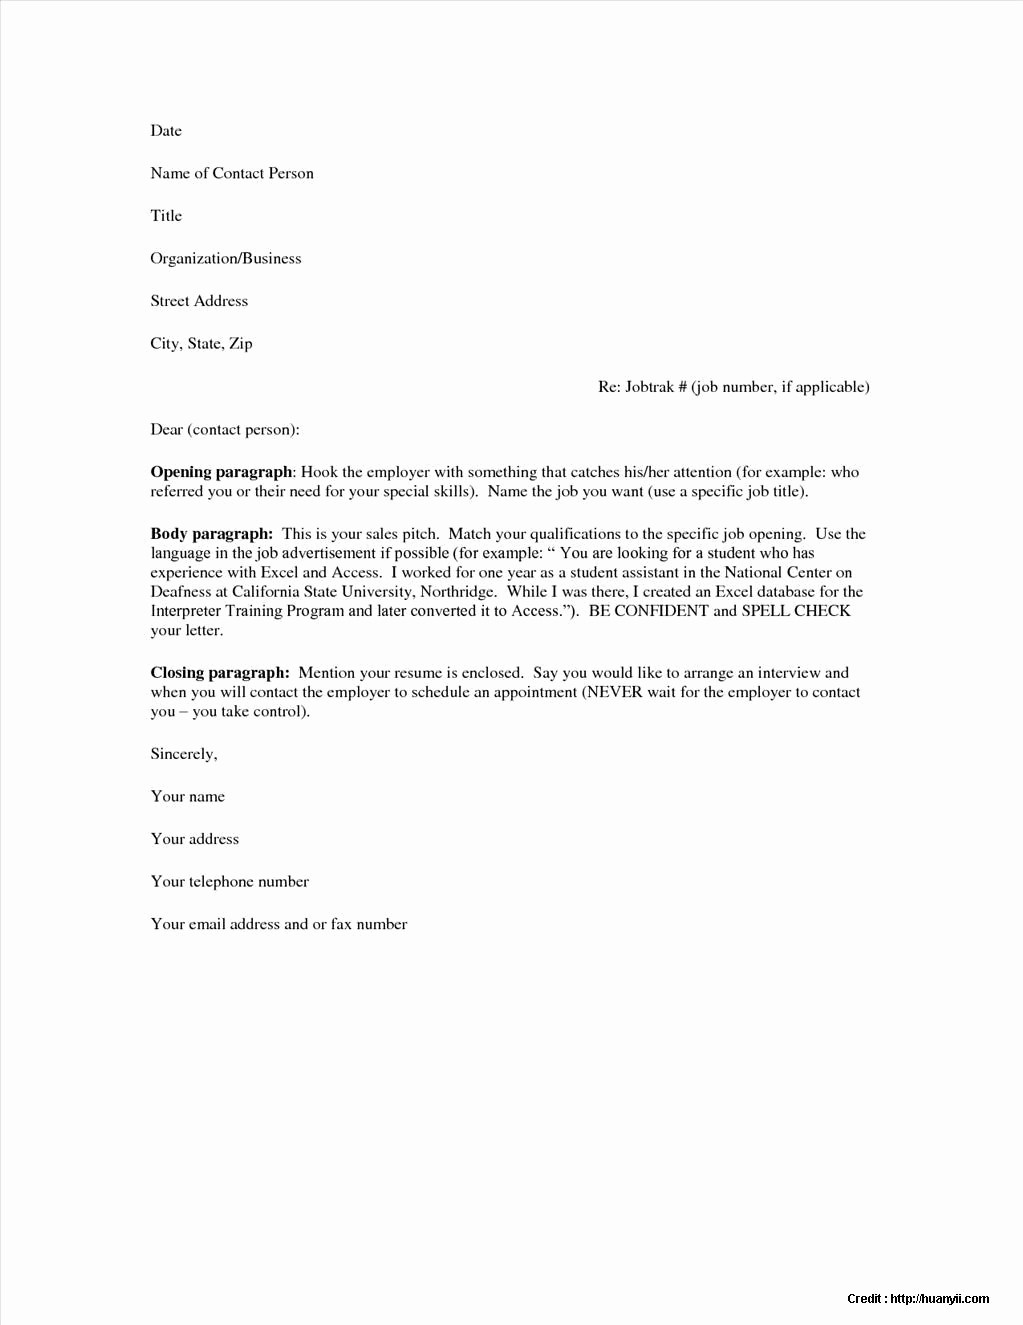 Cover Letter Template Free Download New Resume Cover Letter Samples Free Download Resume